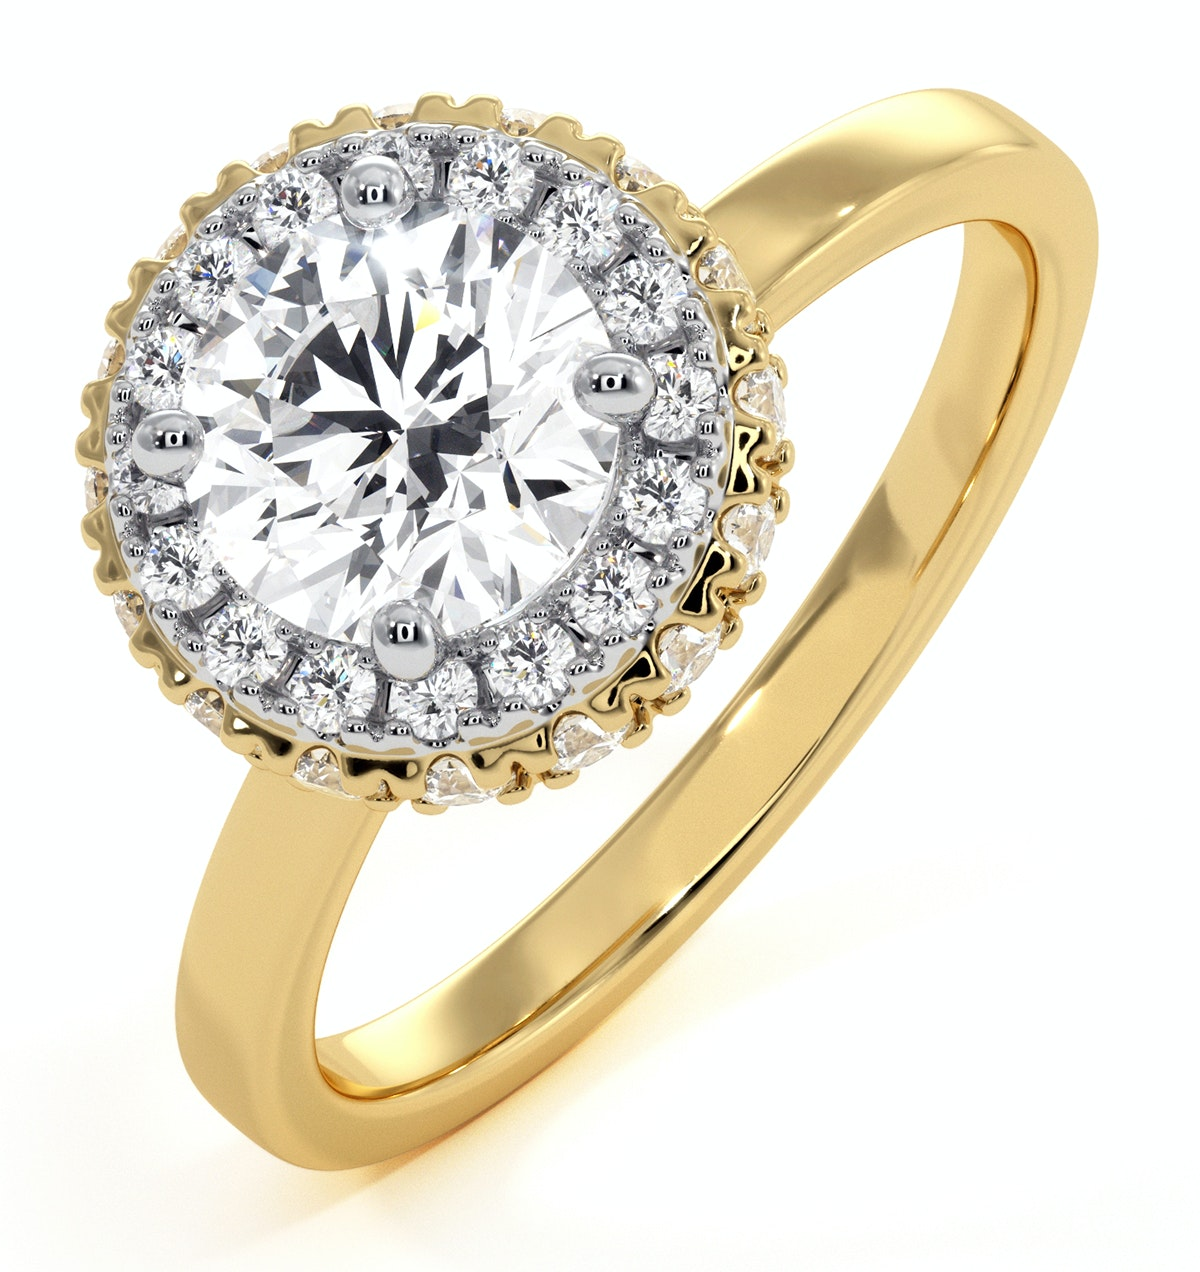 Eleanor GIA Diamond Halo Engagement Ring in 18K Gold 1.23ct G/VS1